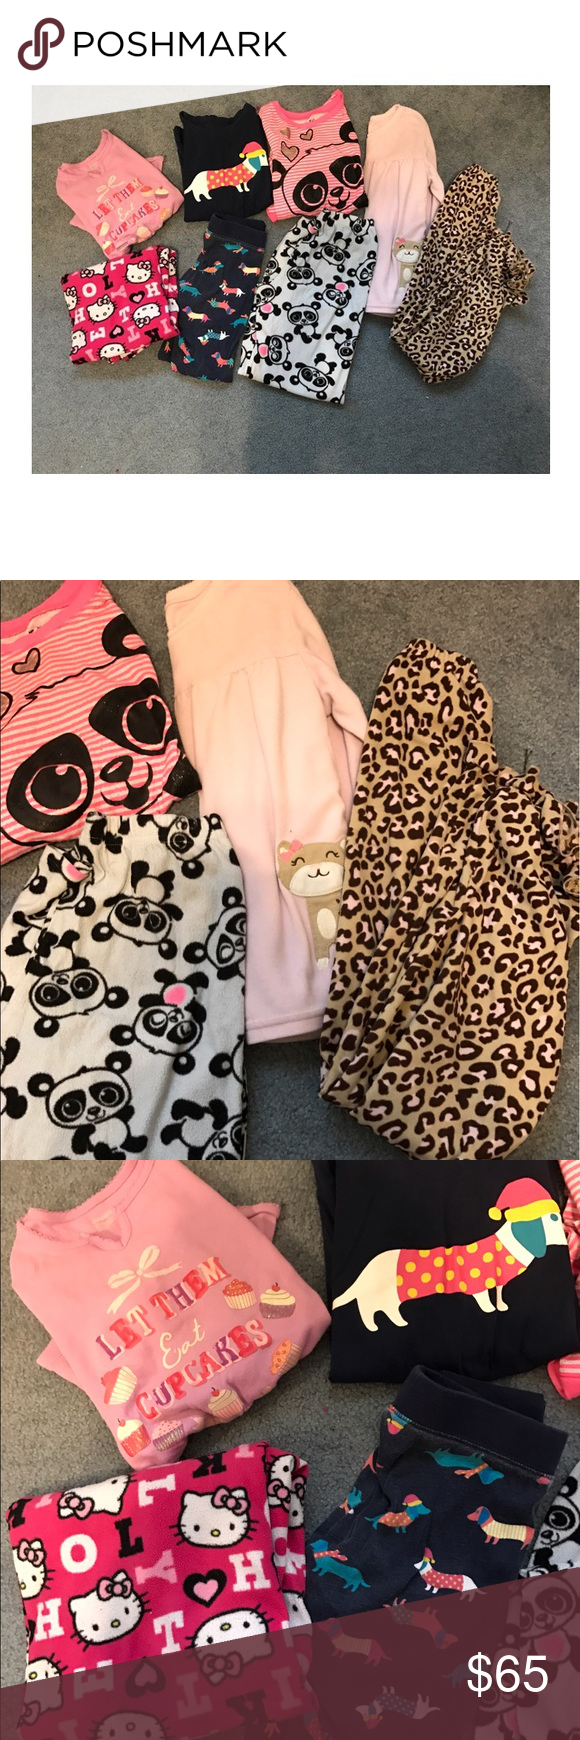 Size 10 girls bundle of pajama sets Size 10 bundle of pajama sets. From various brands that include Gap, Justice, Carters, and Old Navy. All gently worn. The leopard set is a soft material all throughout the pajama top and bottom, from carters, and the are stretchy comfortable material with stretch waistband. Dog set is a comfy t shirt and legging pant that stretch with dog print all throughout and is from old navy. The hello kitty pants are not a set and the cupcake t shirt is also not a…